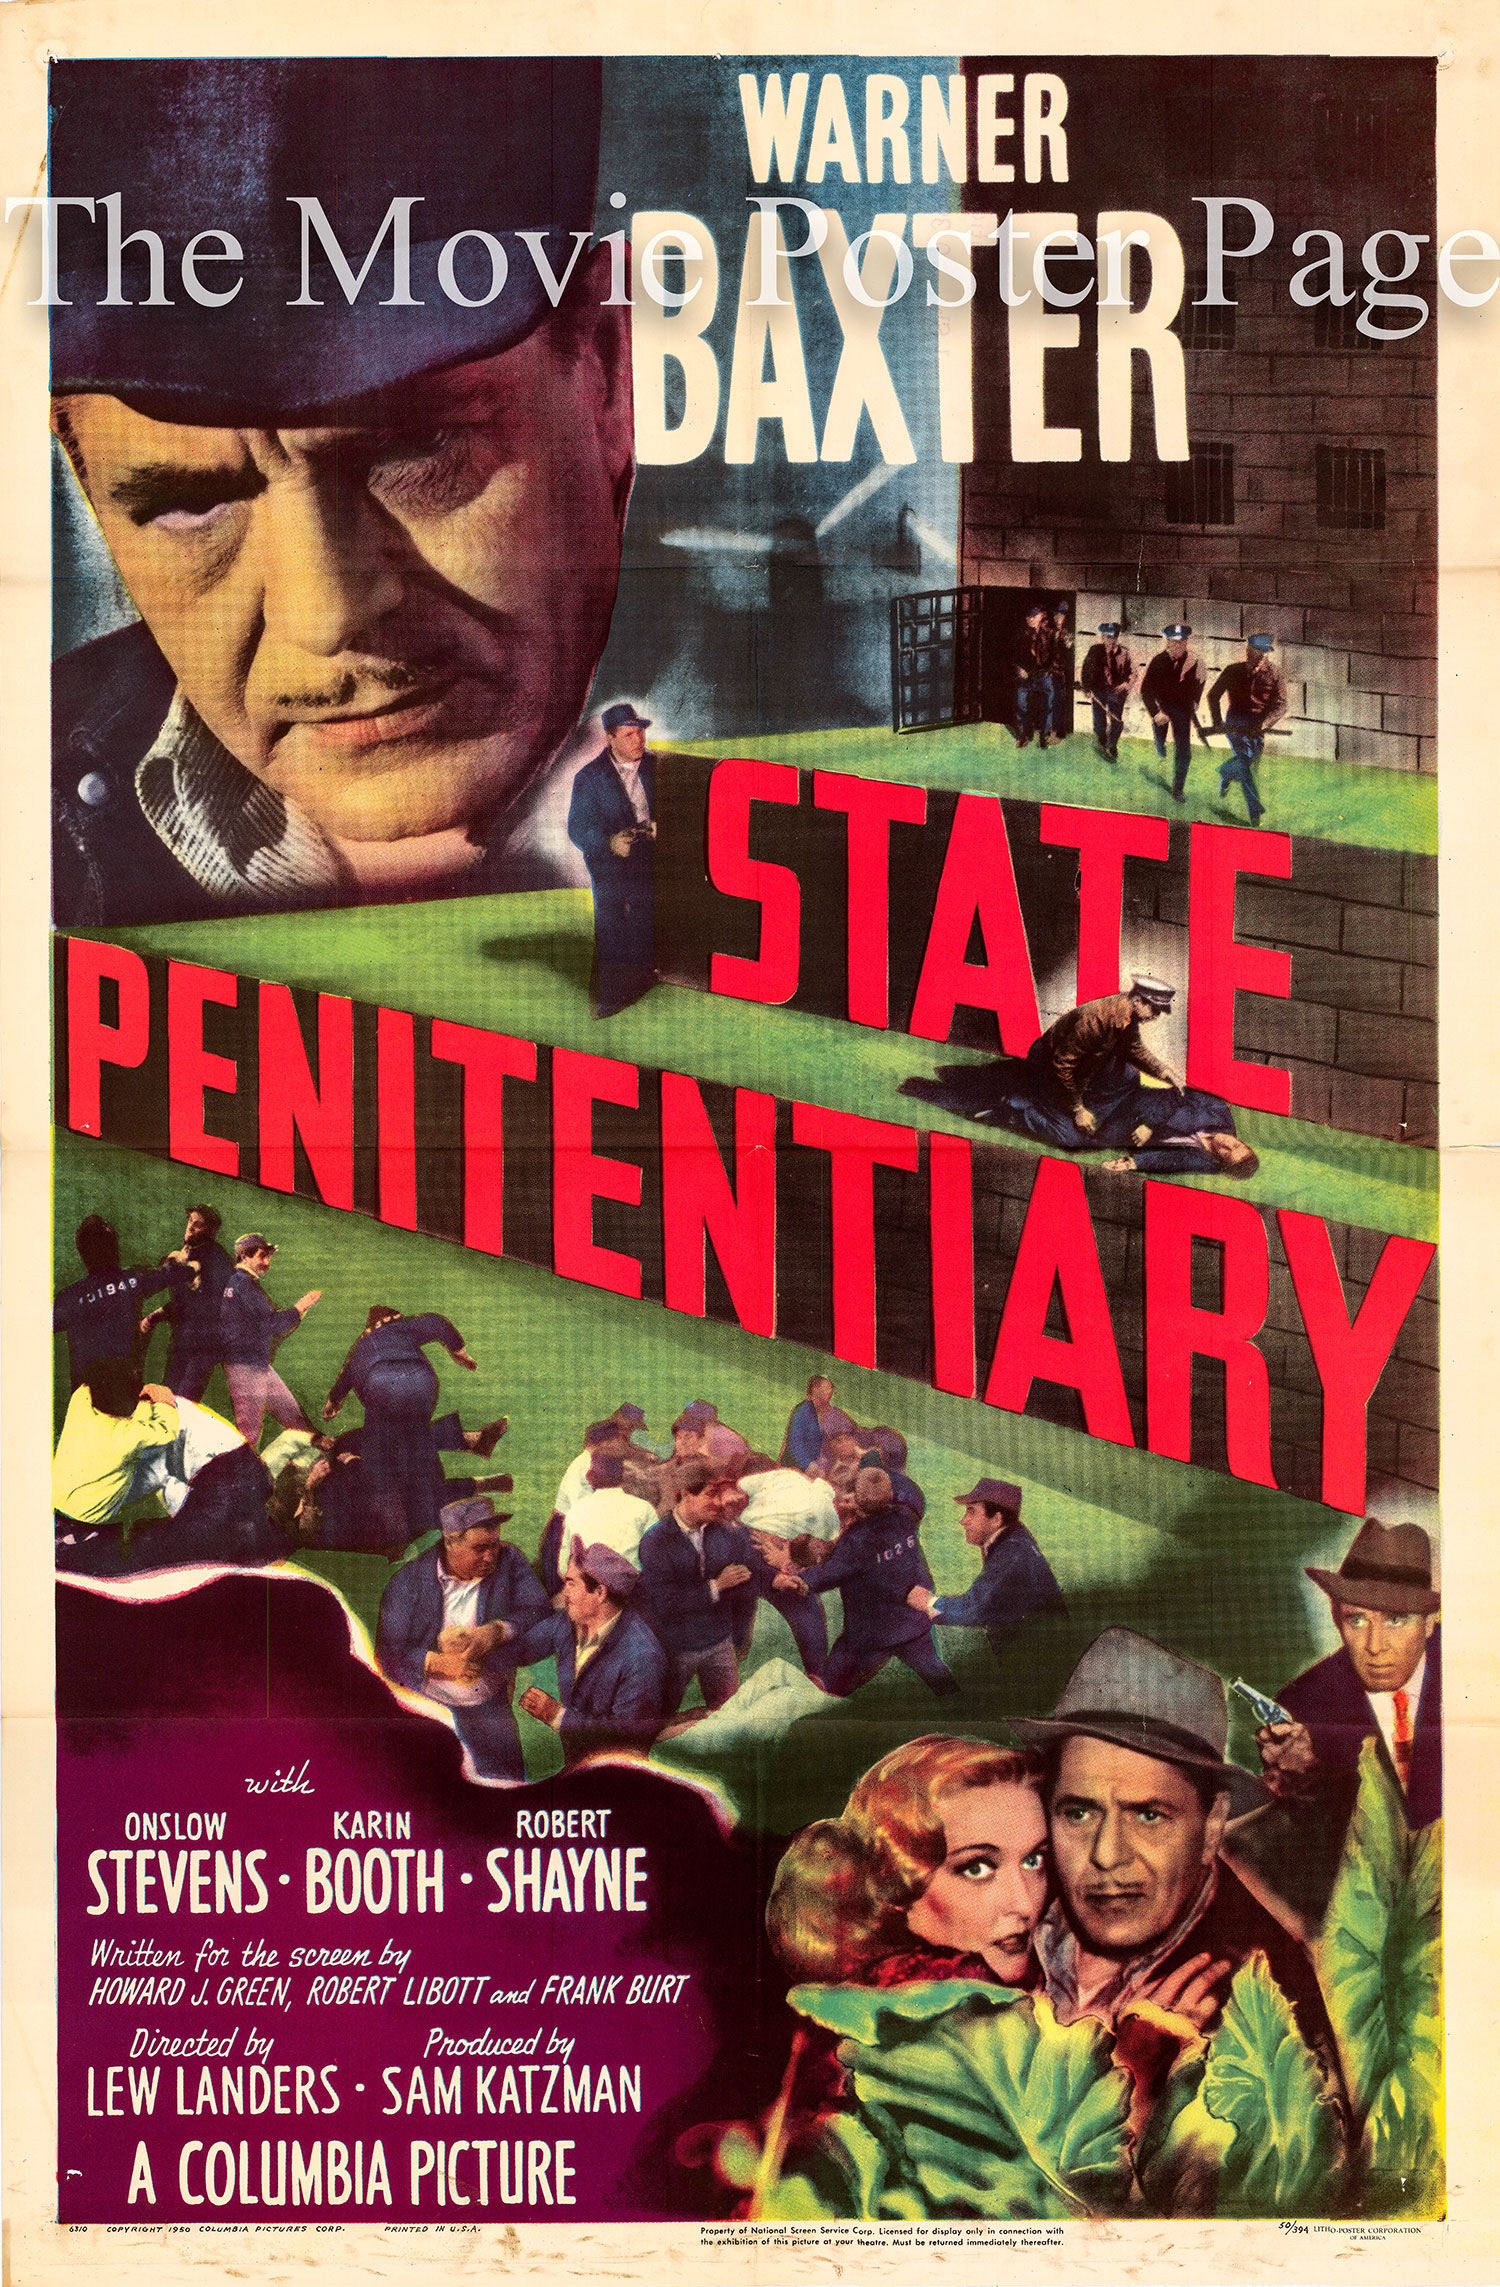 Pictured is a US one-sheet promotional poster for the 1950 Lew Landers film State Penitentiary starring Warner Baxter.